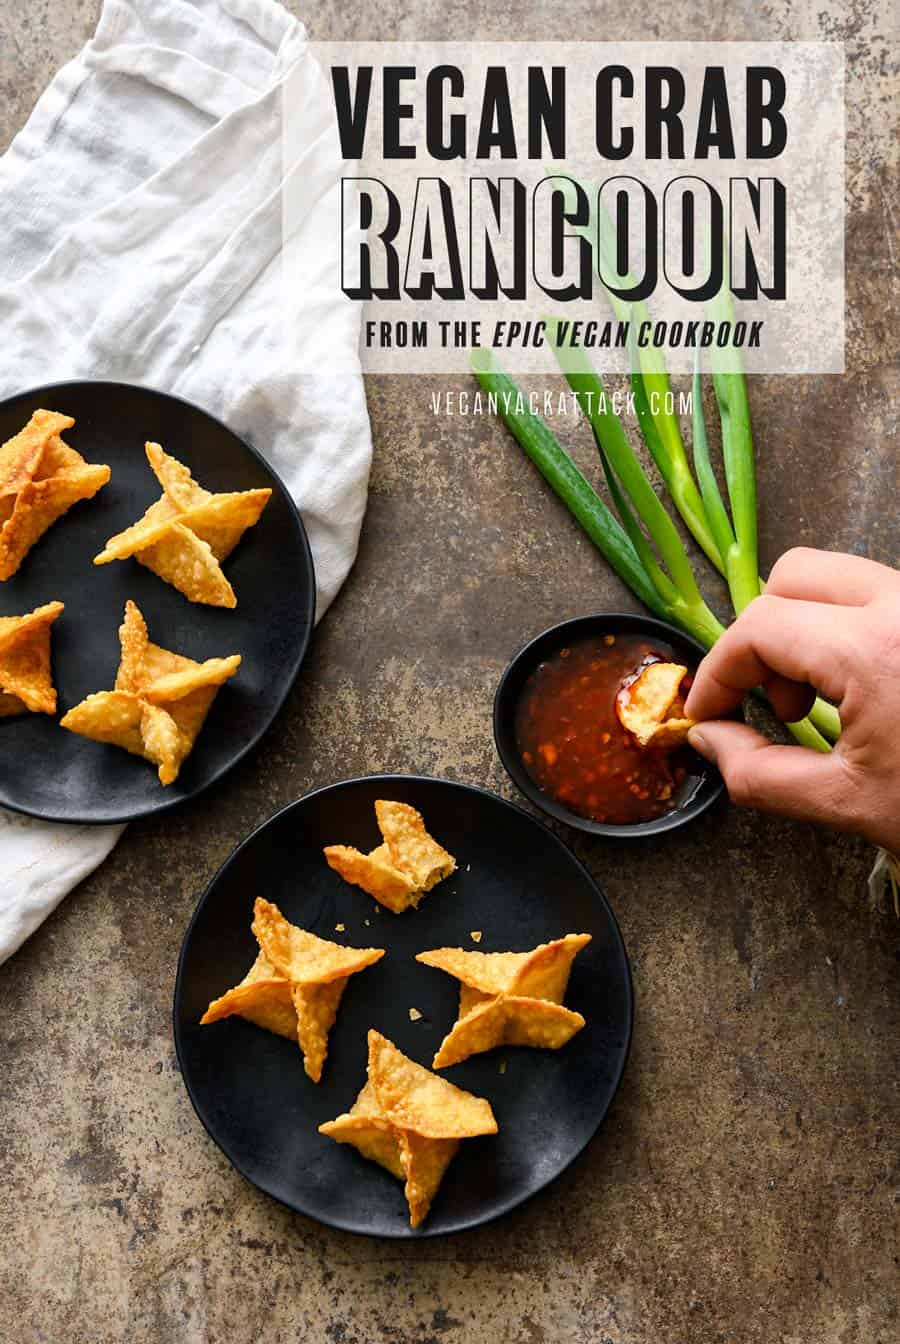 """A hand dipping vegan Crab Rangoon into sweet chili sauce, with two black plates of Crab Rangoon, on a napkin and grey background. Text on image reads """"Vegan Crab Rangoon from the Epic Vegan Cookbook"""""""